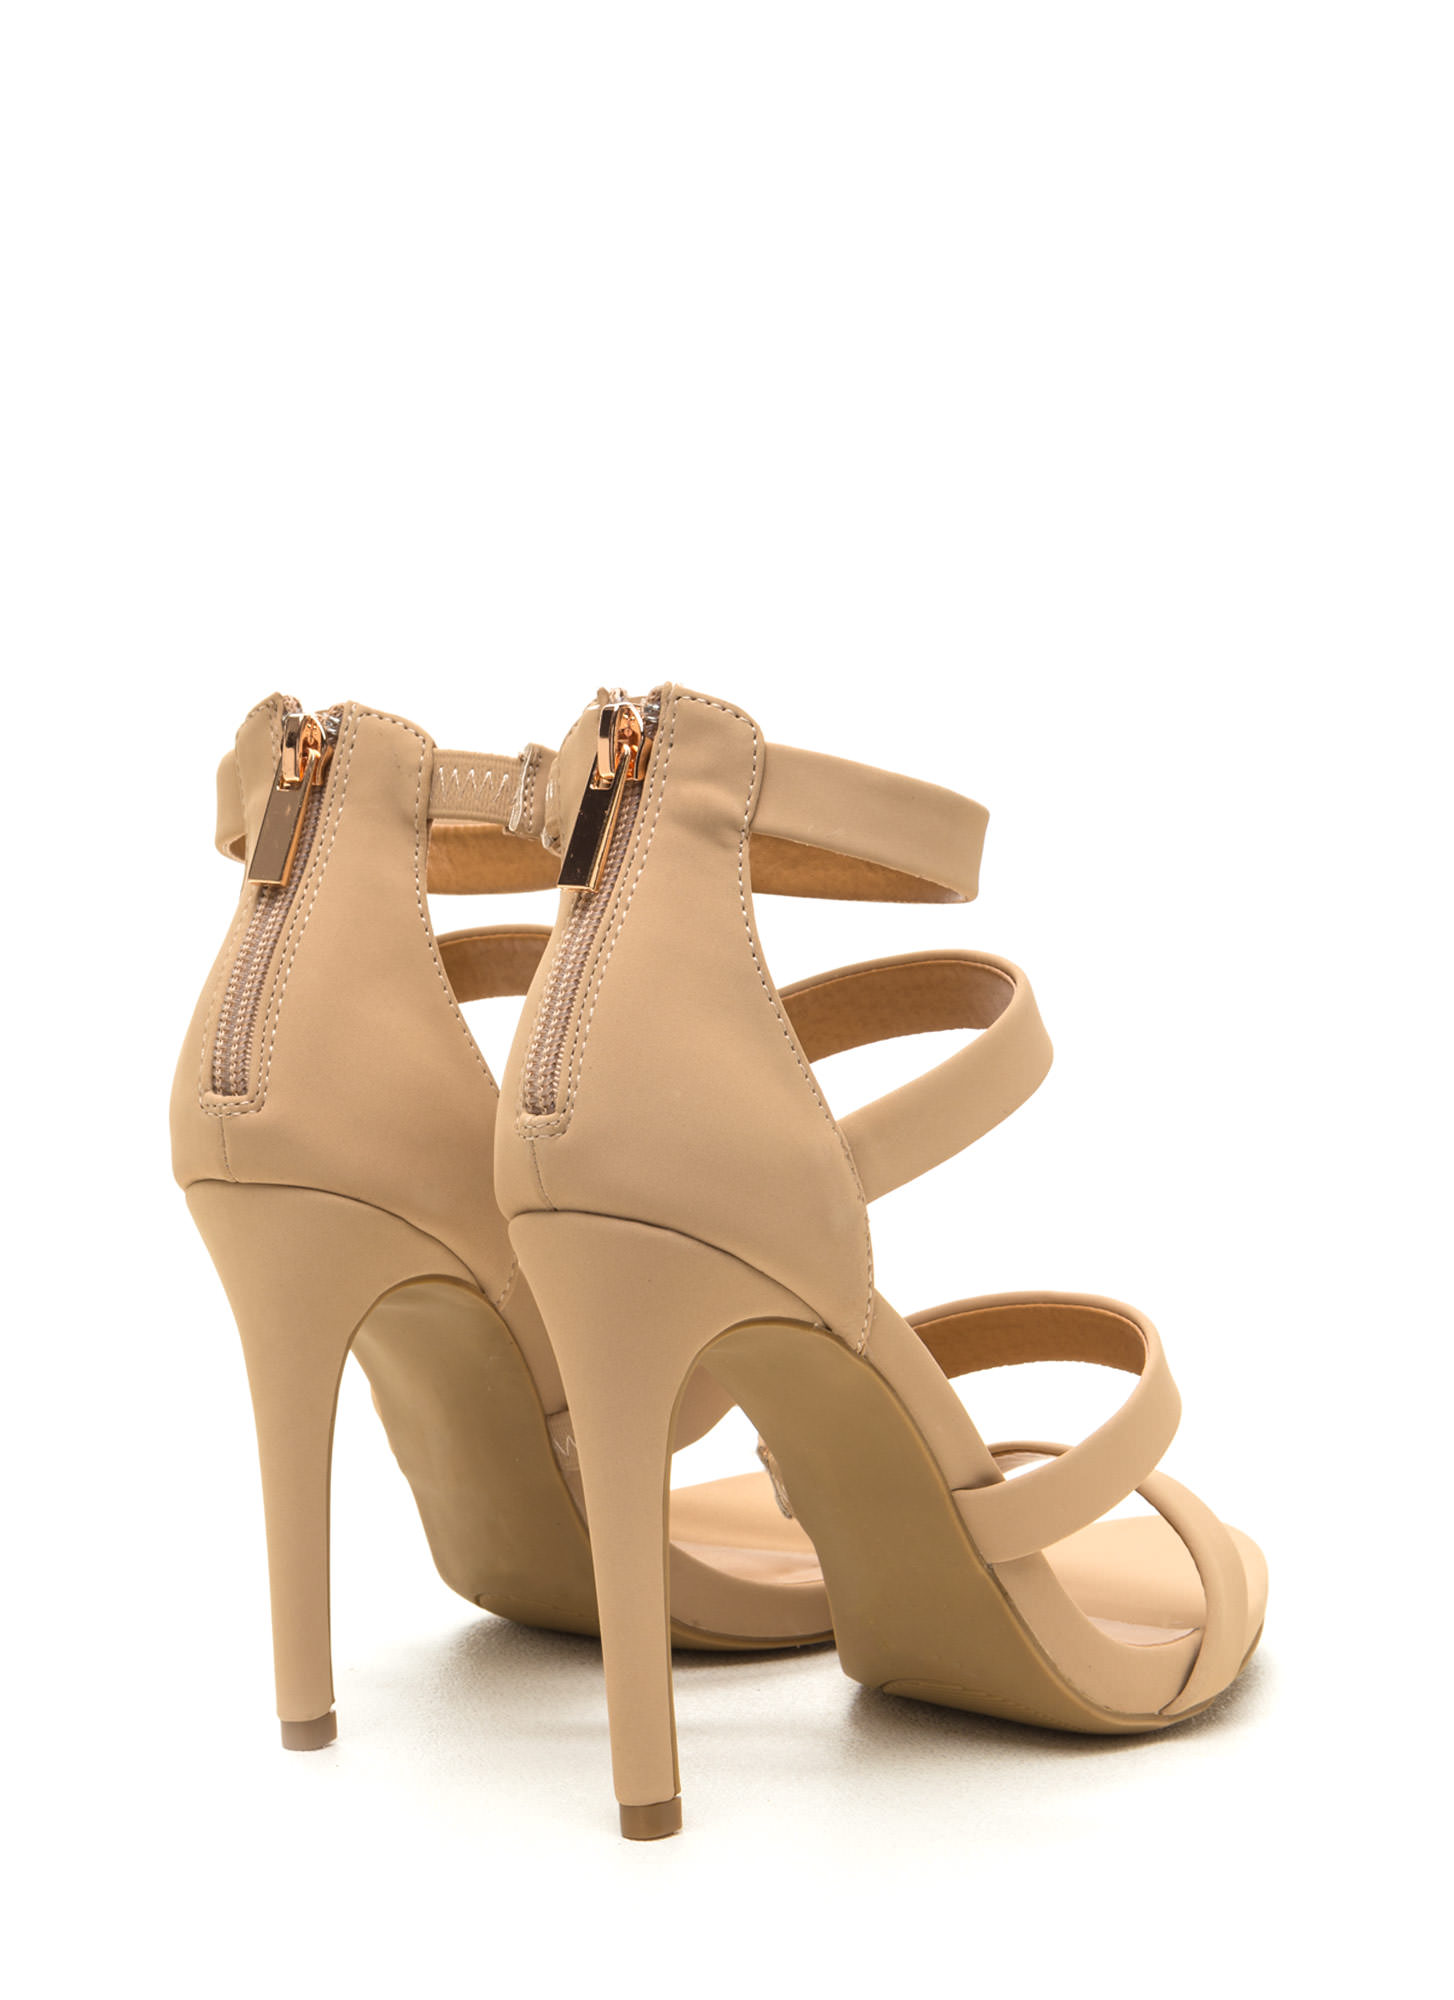 Level Up Faux Nubuck Strappy Heels NUDE